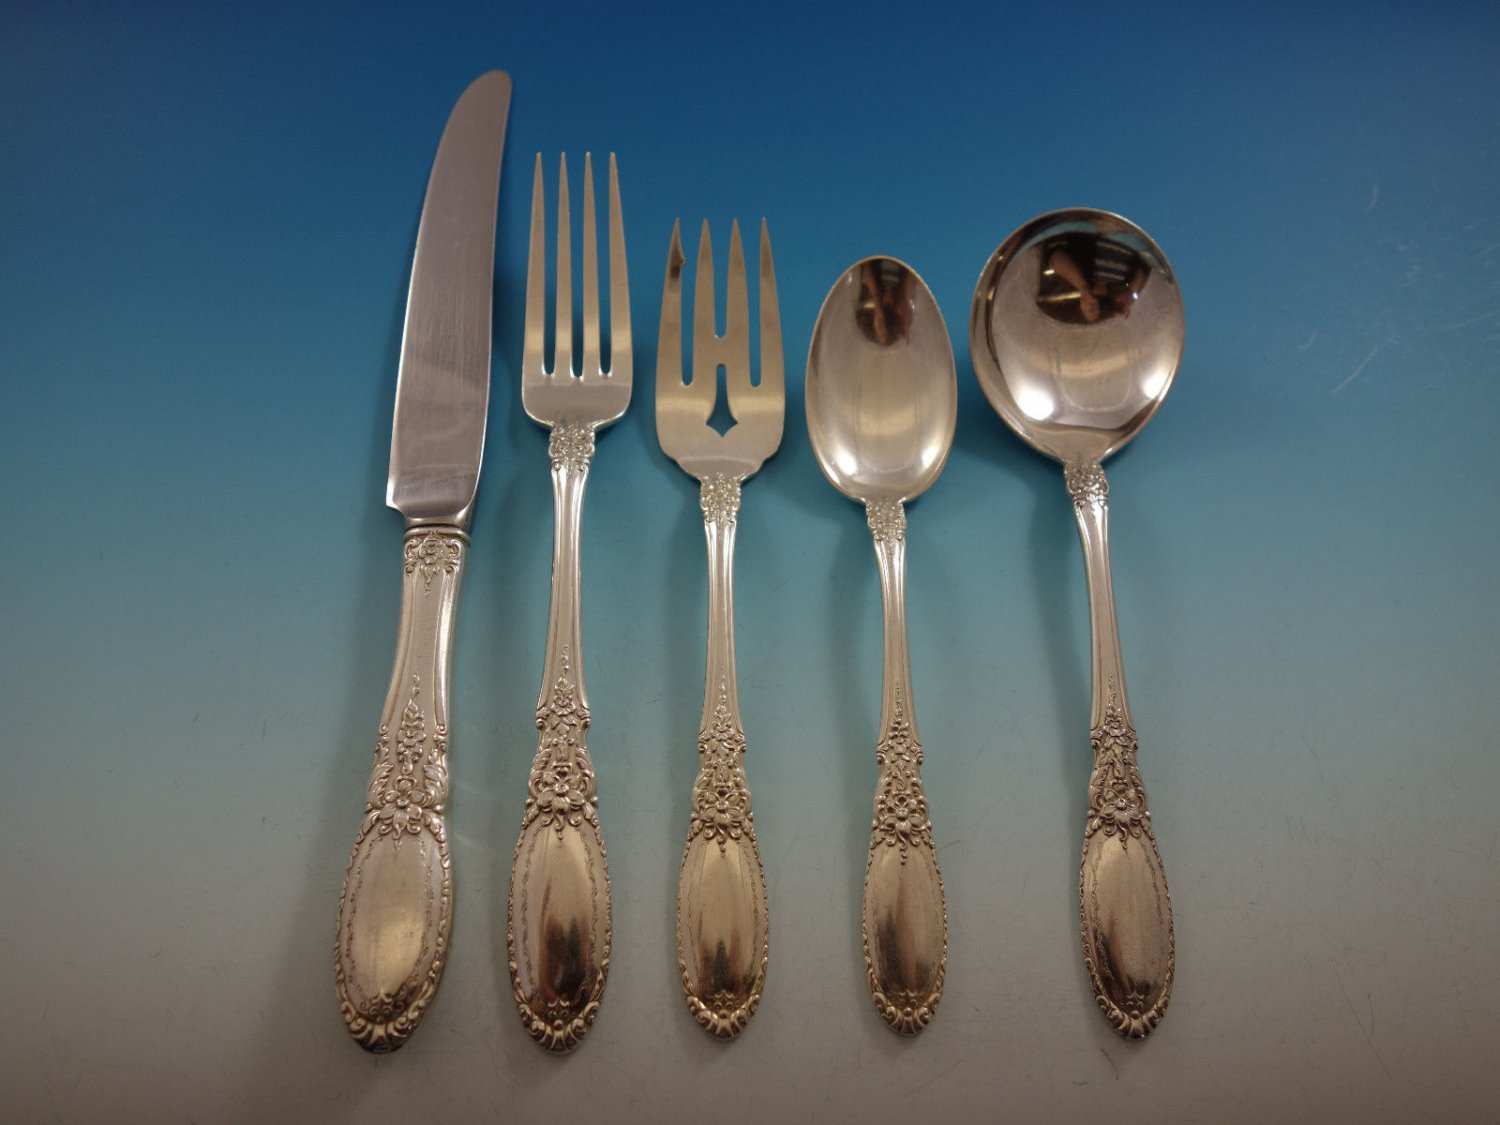 Old Mirror by Towle Sterling Silver Flatware Set For 8 Service 41 Pieces